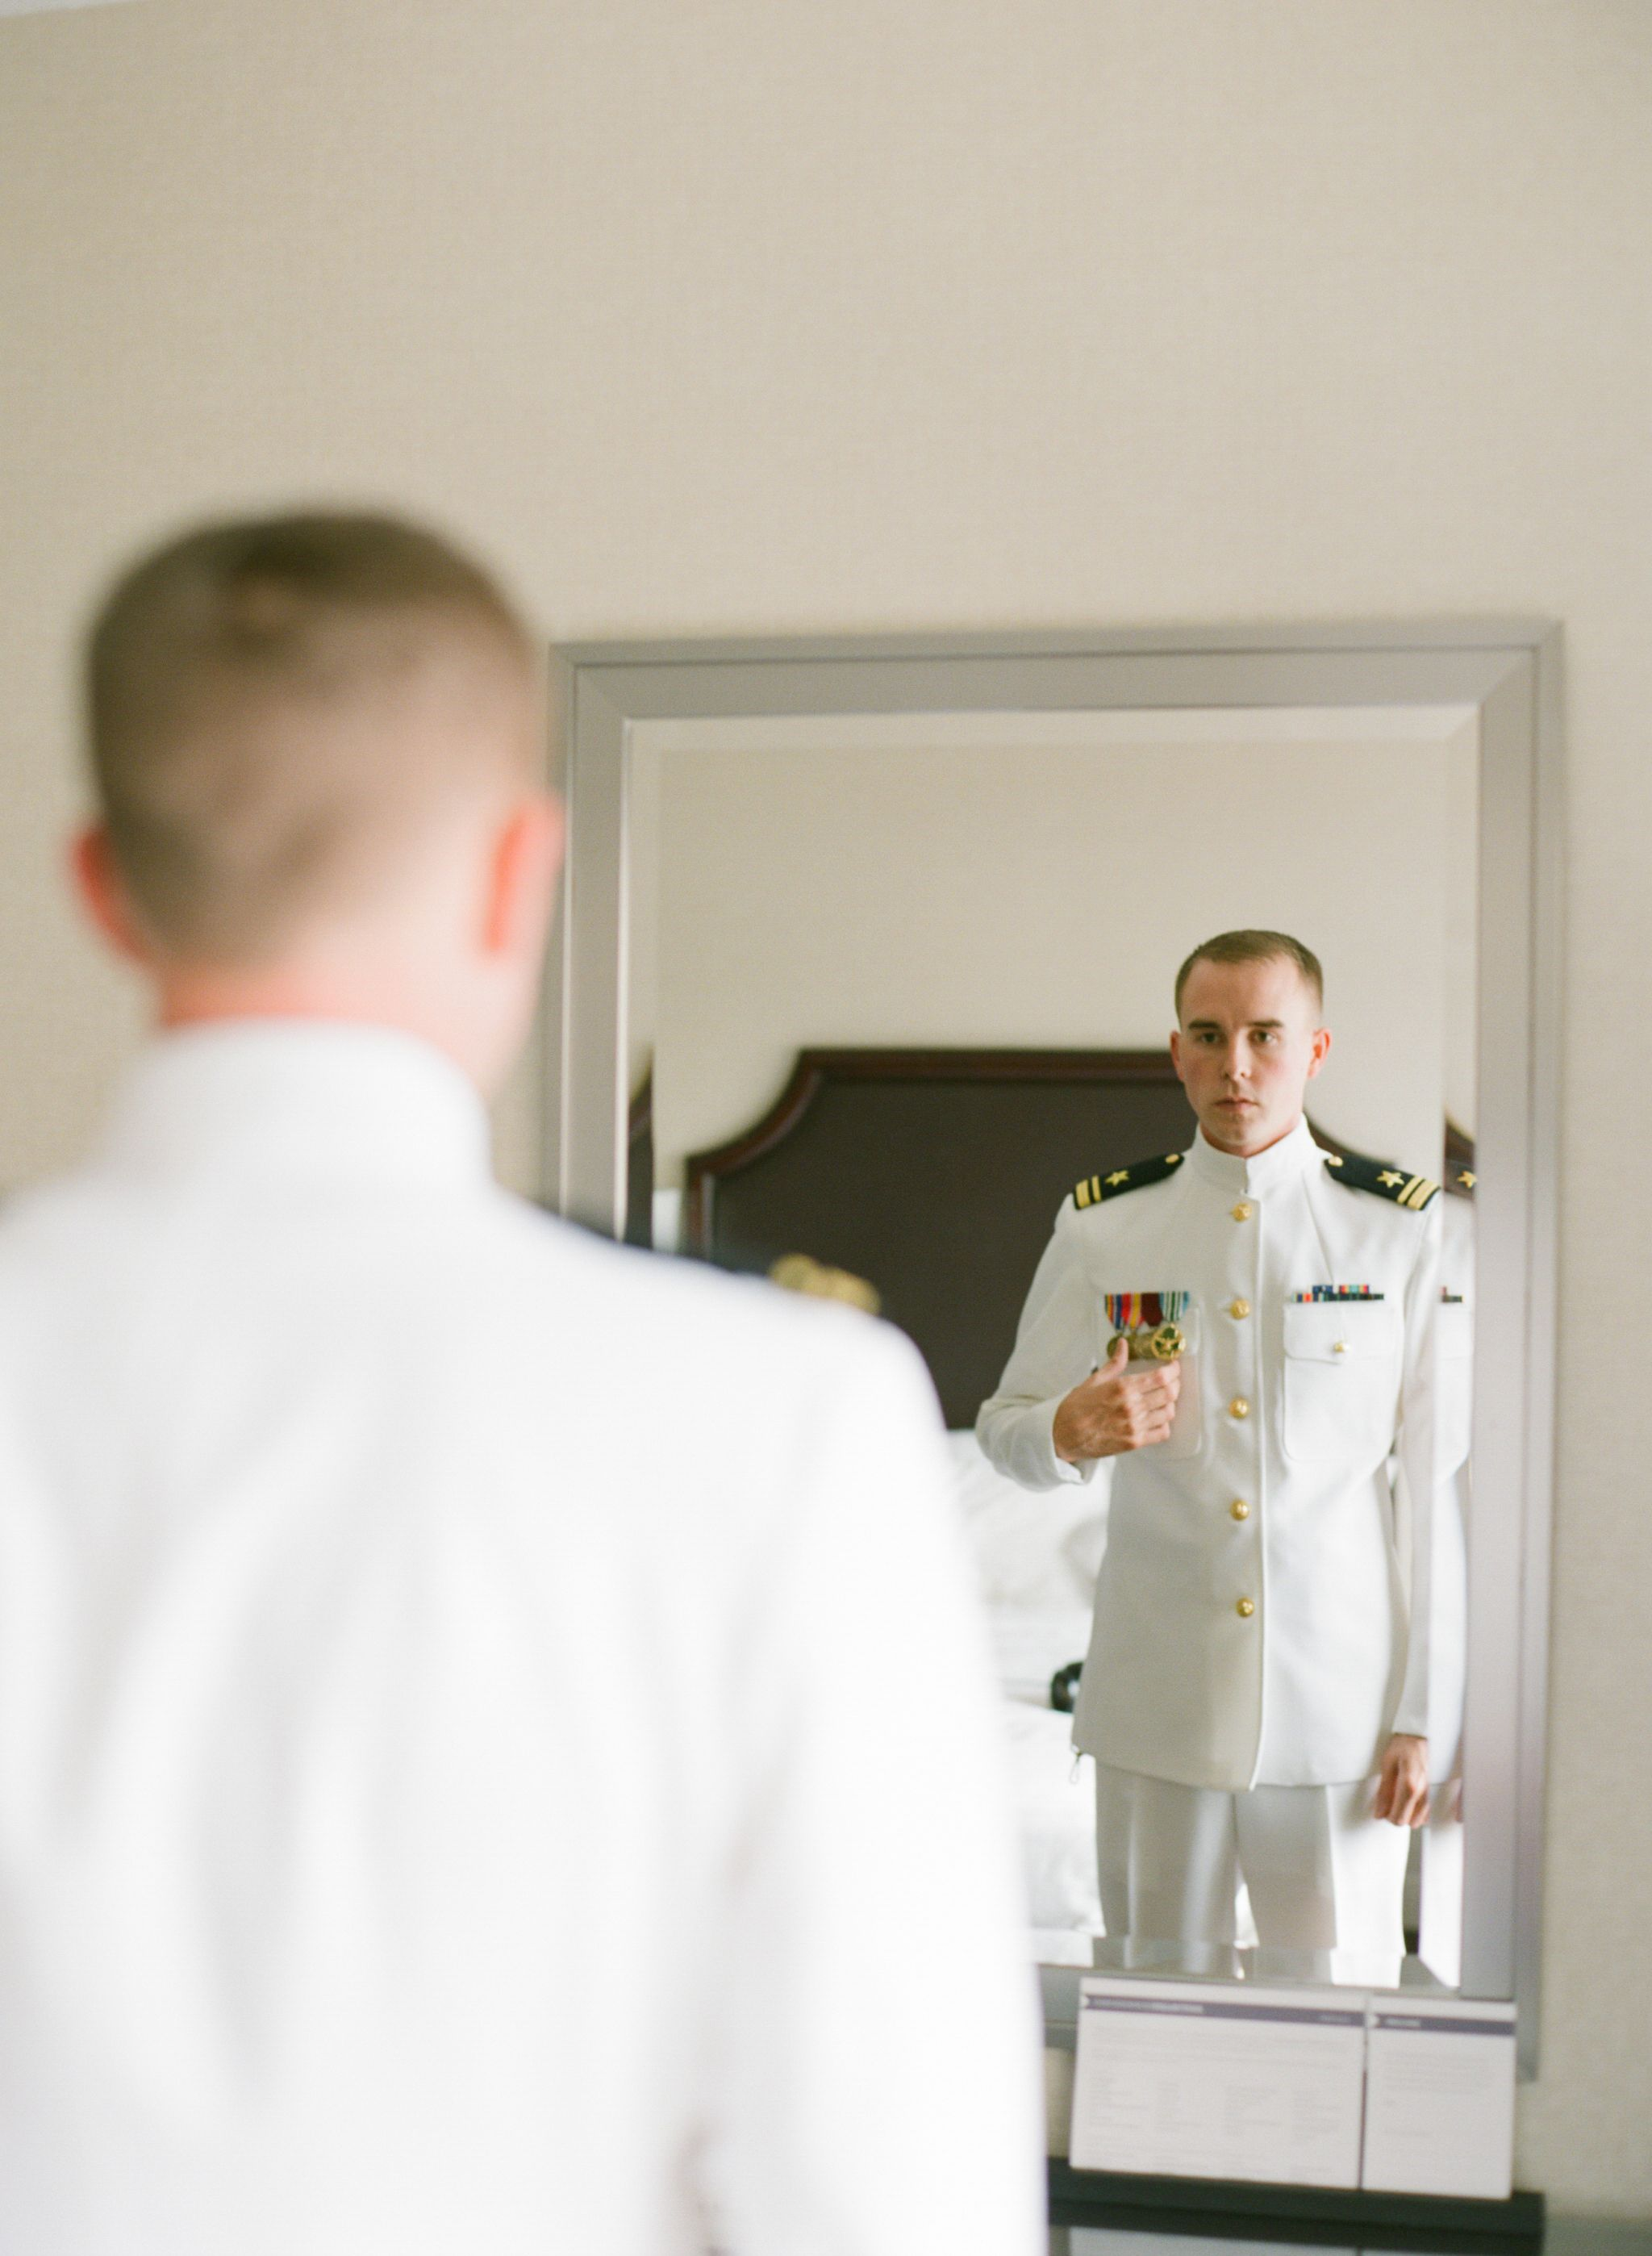 Dress white uniform with medals